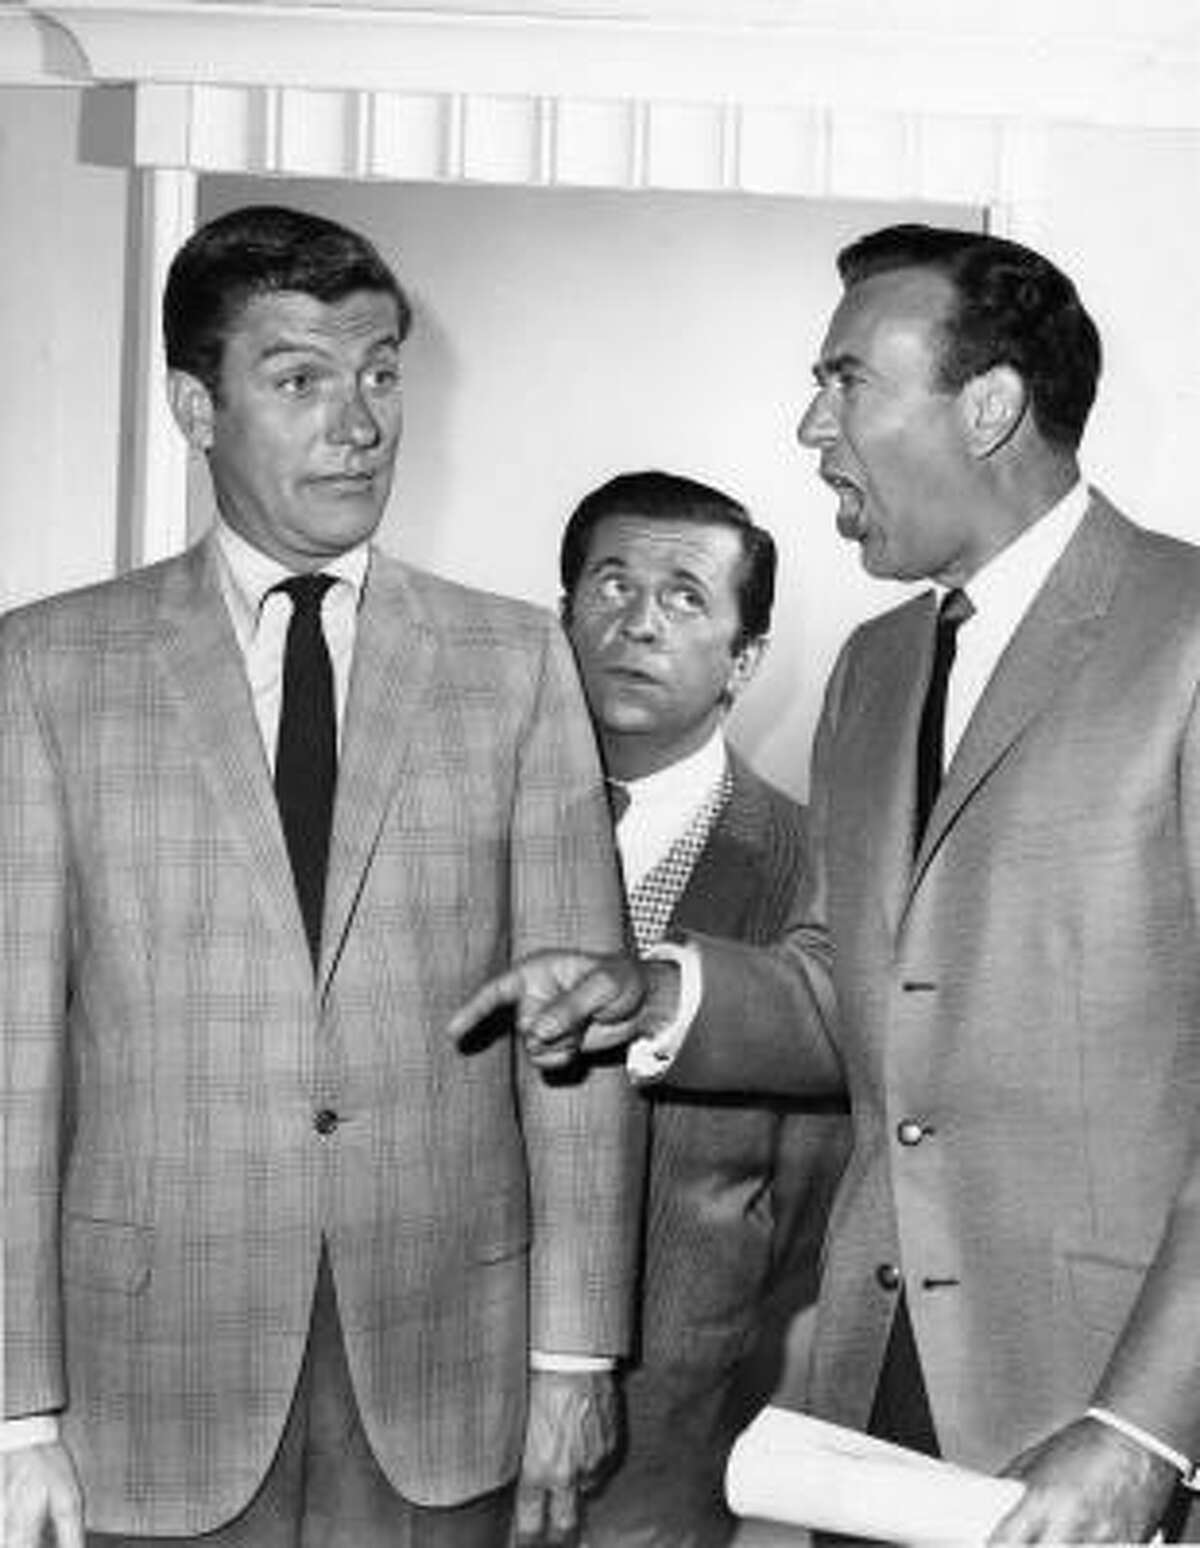 Dick Van Dyke, from left, Morey Amsterdam and Carl Reiner were instrumental in making The Dick Van Dyke Show a success. It's one of the series highlighted in Make 'Em Laugh: The Funny Business of America.